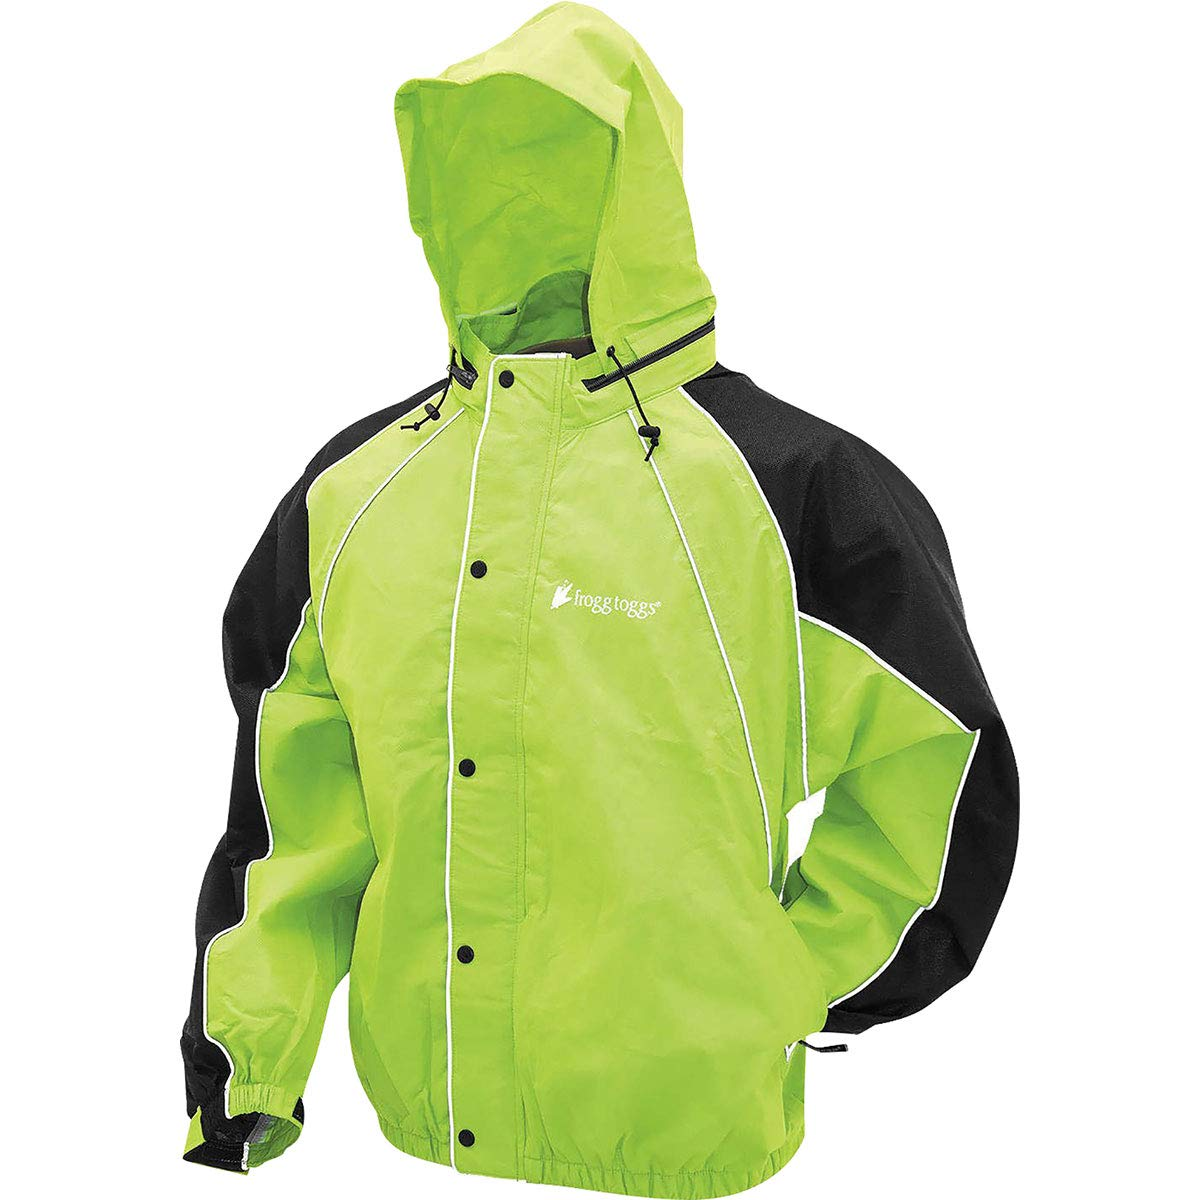 Frogg Toggs Hogg Togg Men's Street Motorcycle Rainsuit - Lime/Black/X-Large